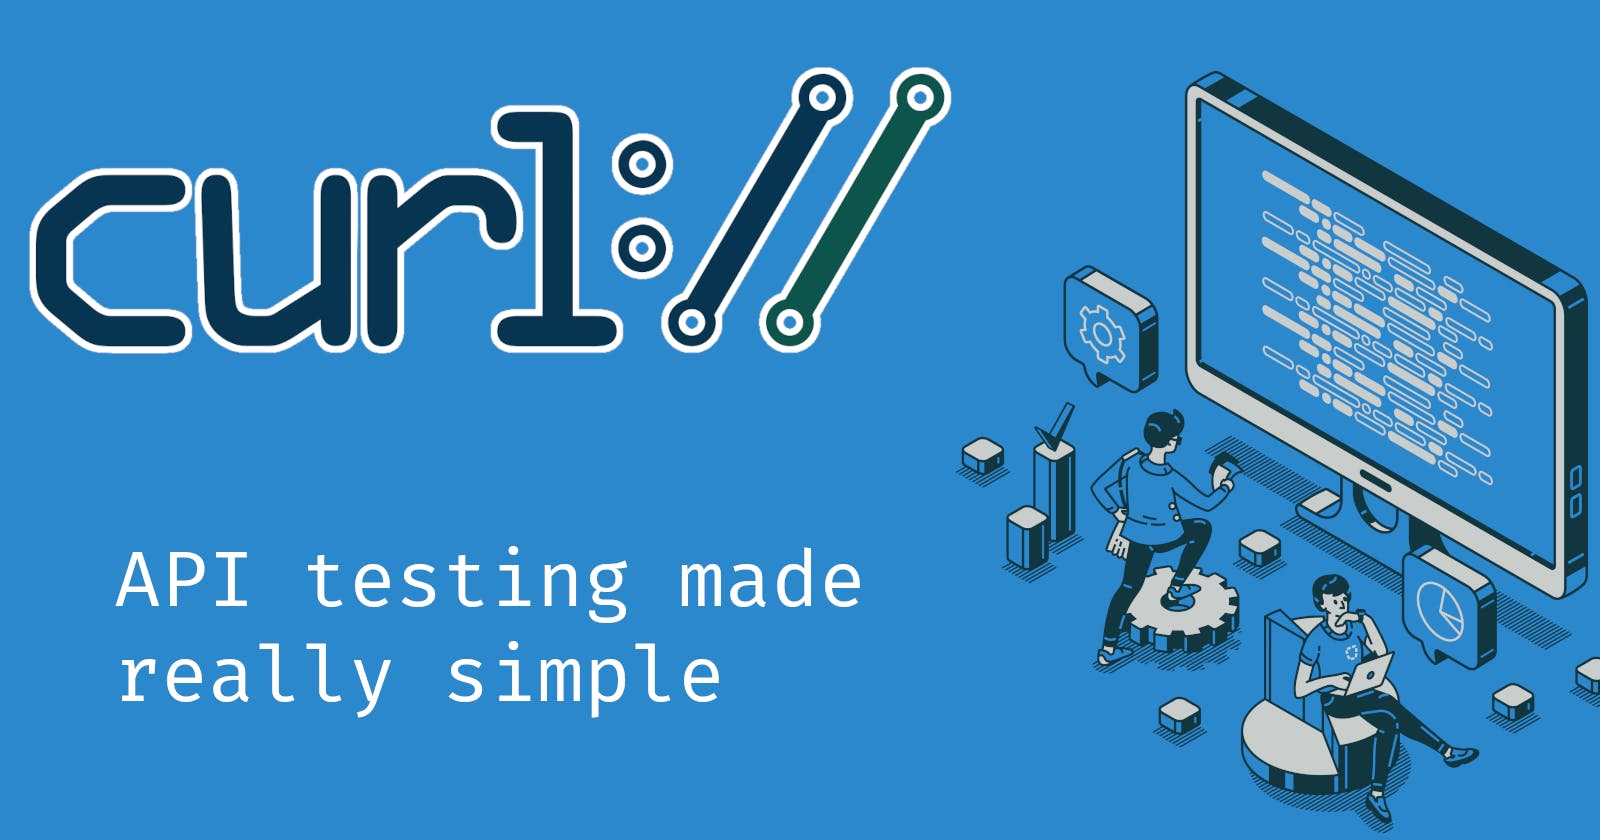 curl - API testing made really simple